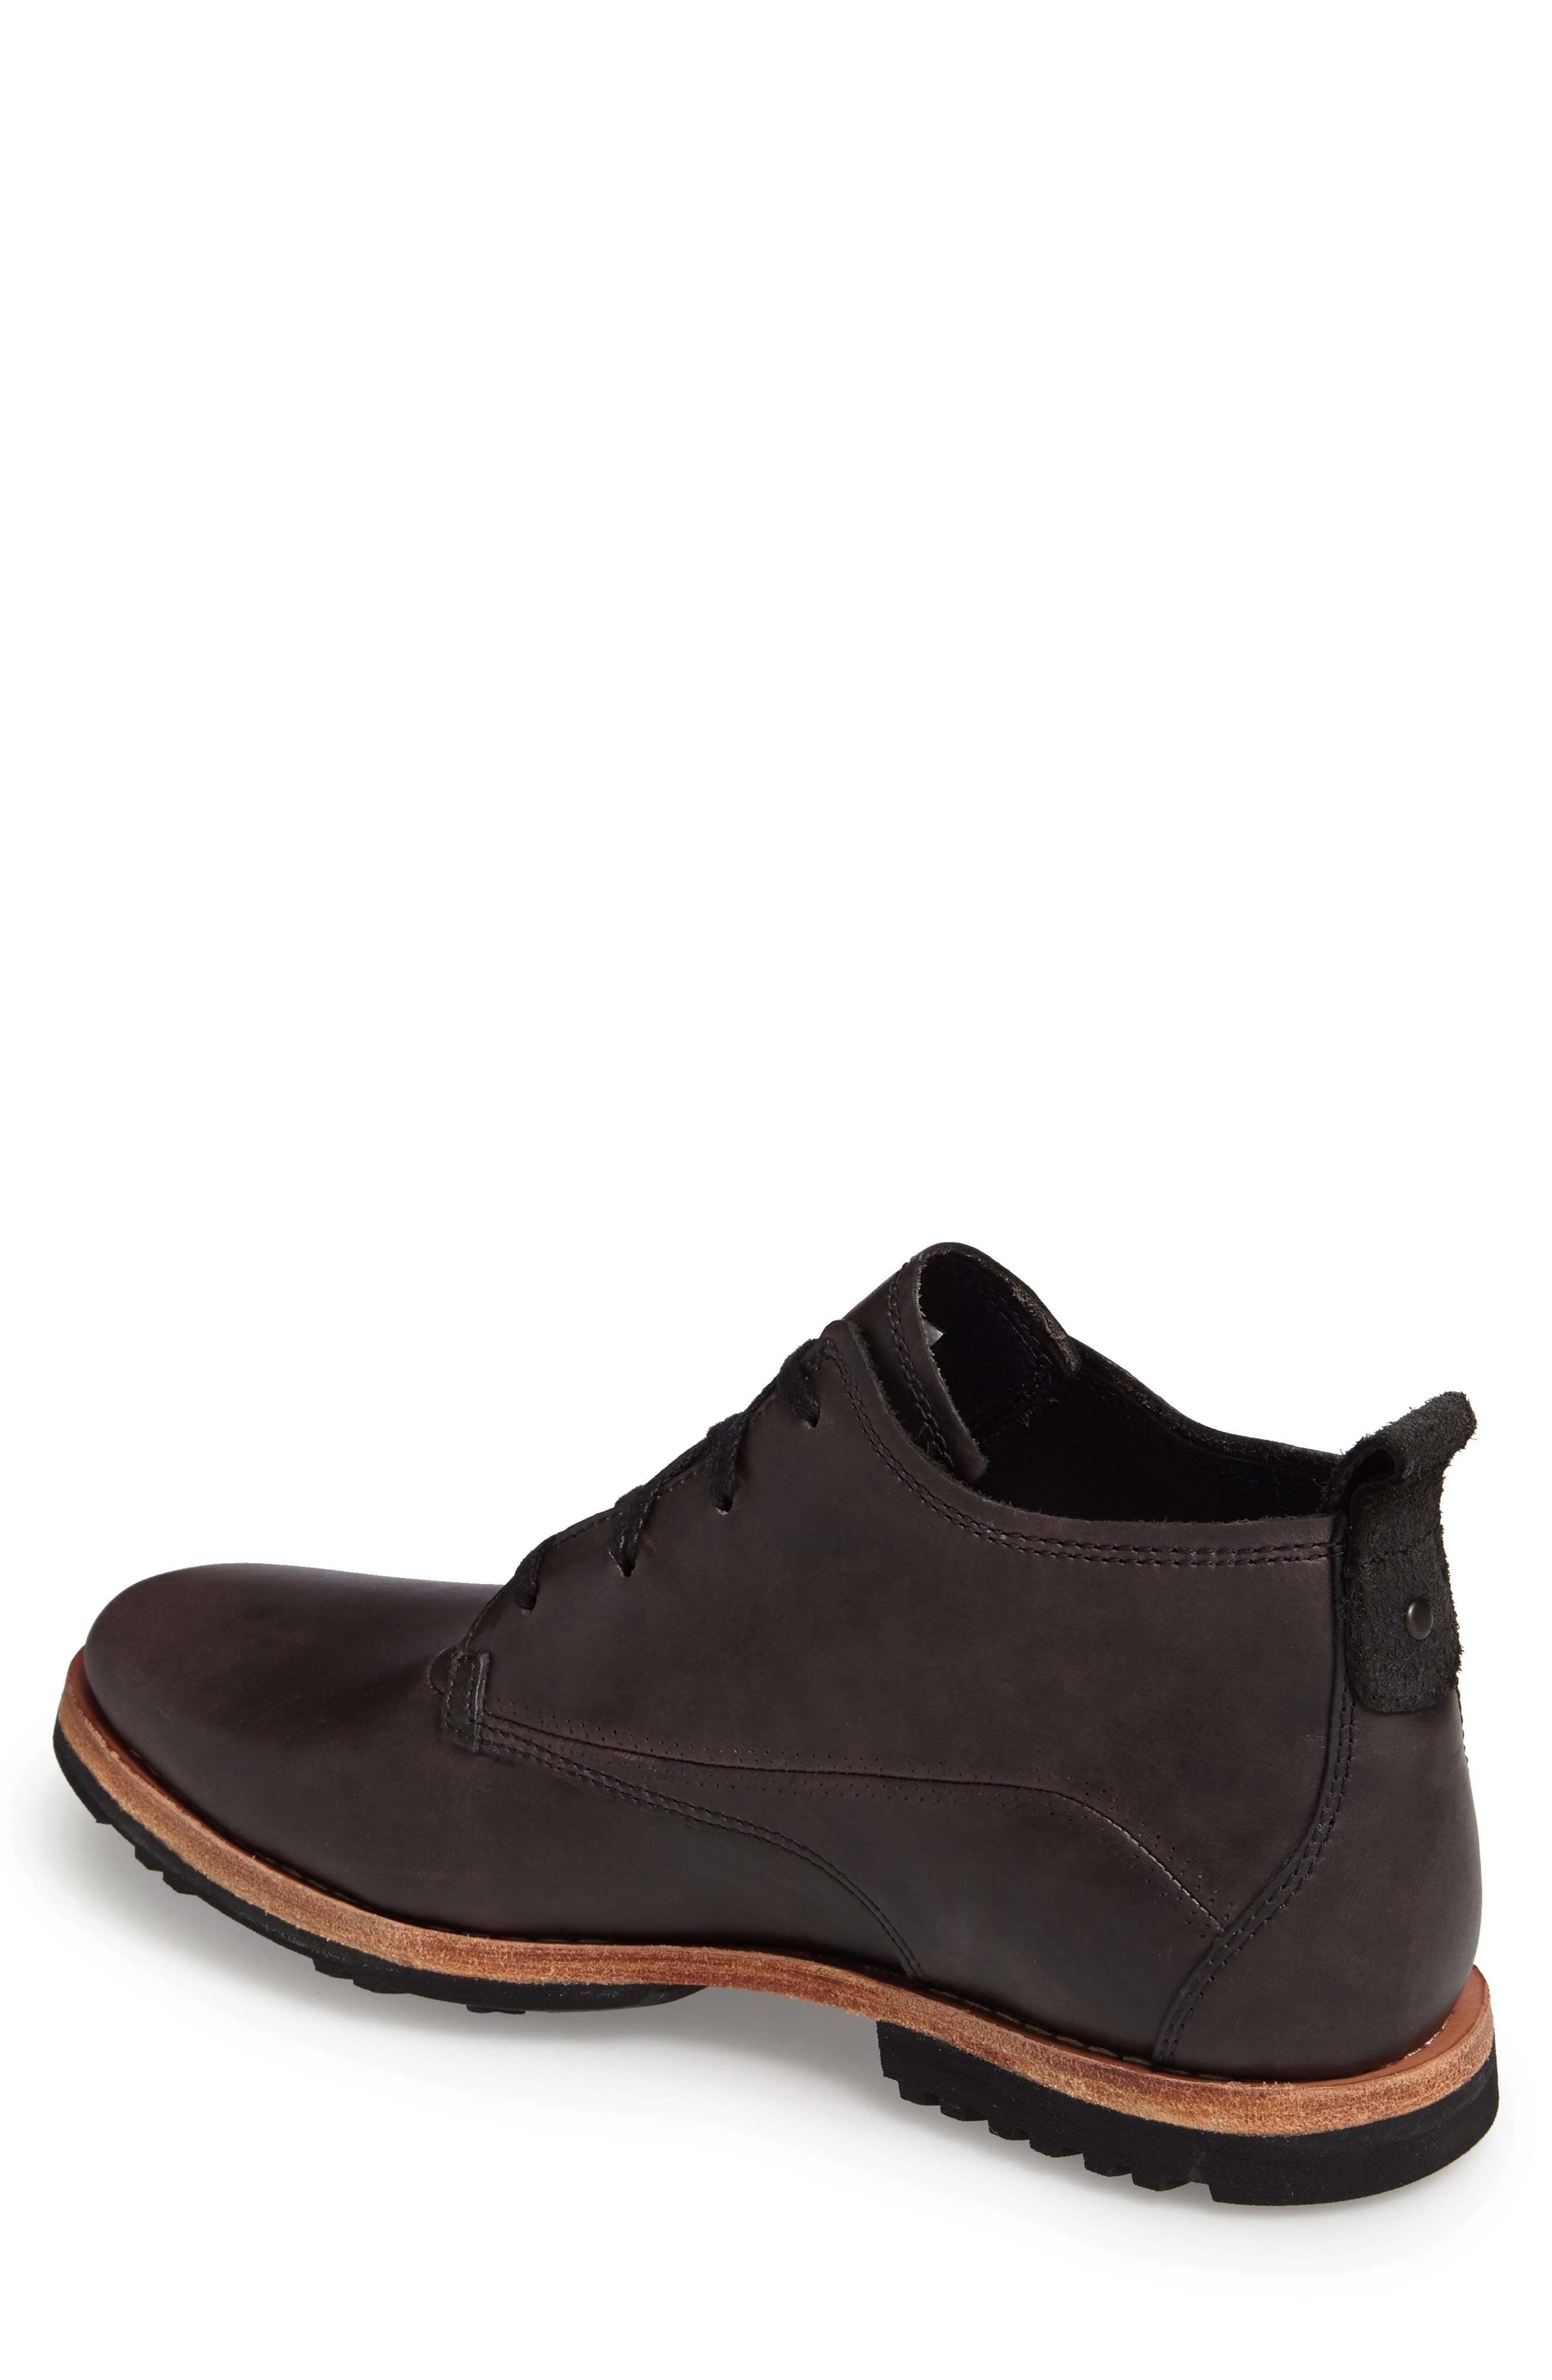 'Bardstown' Chukka Boot,                             Alternate thumbnail 2, color,                             002